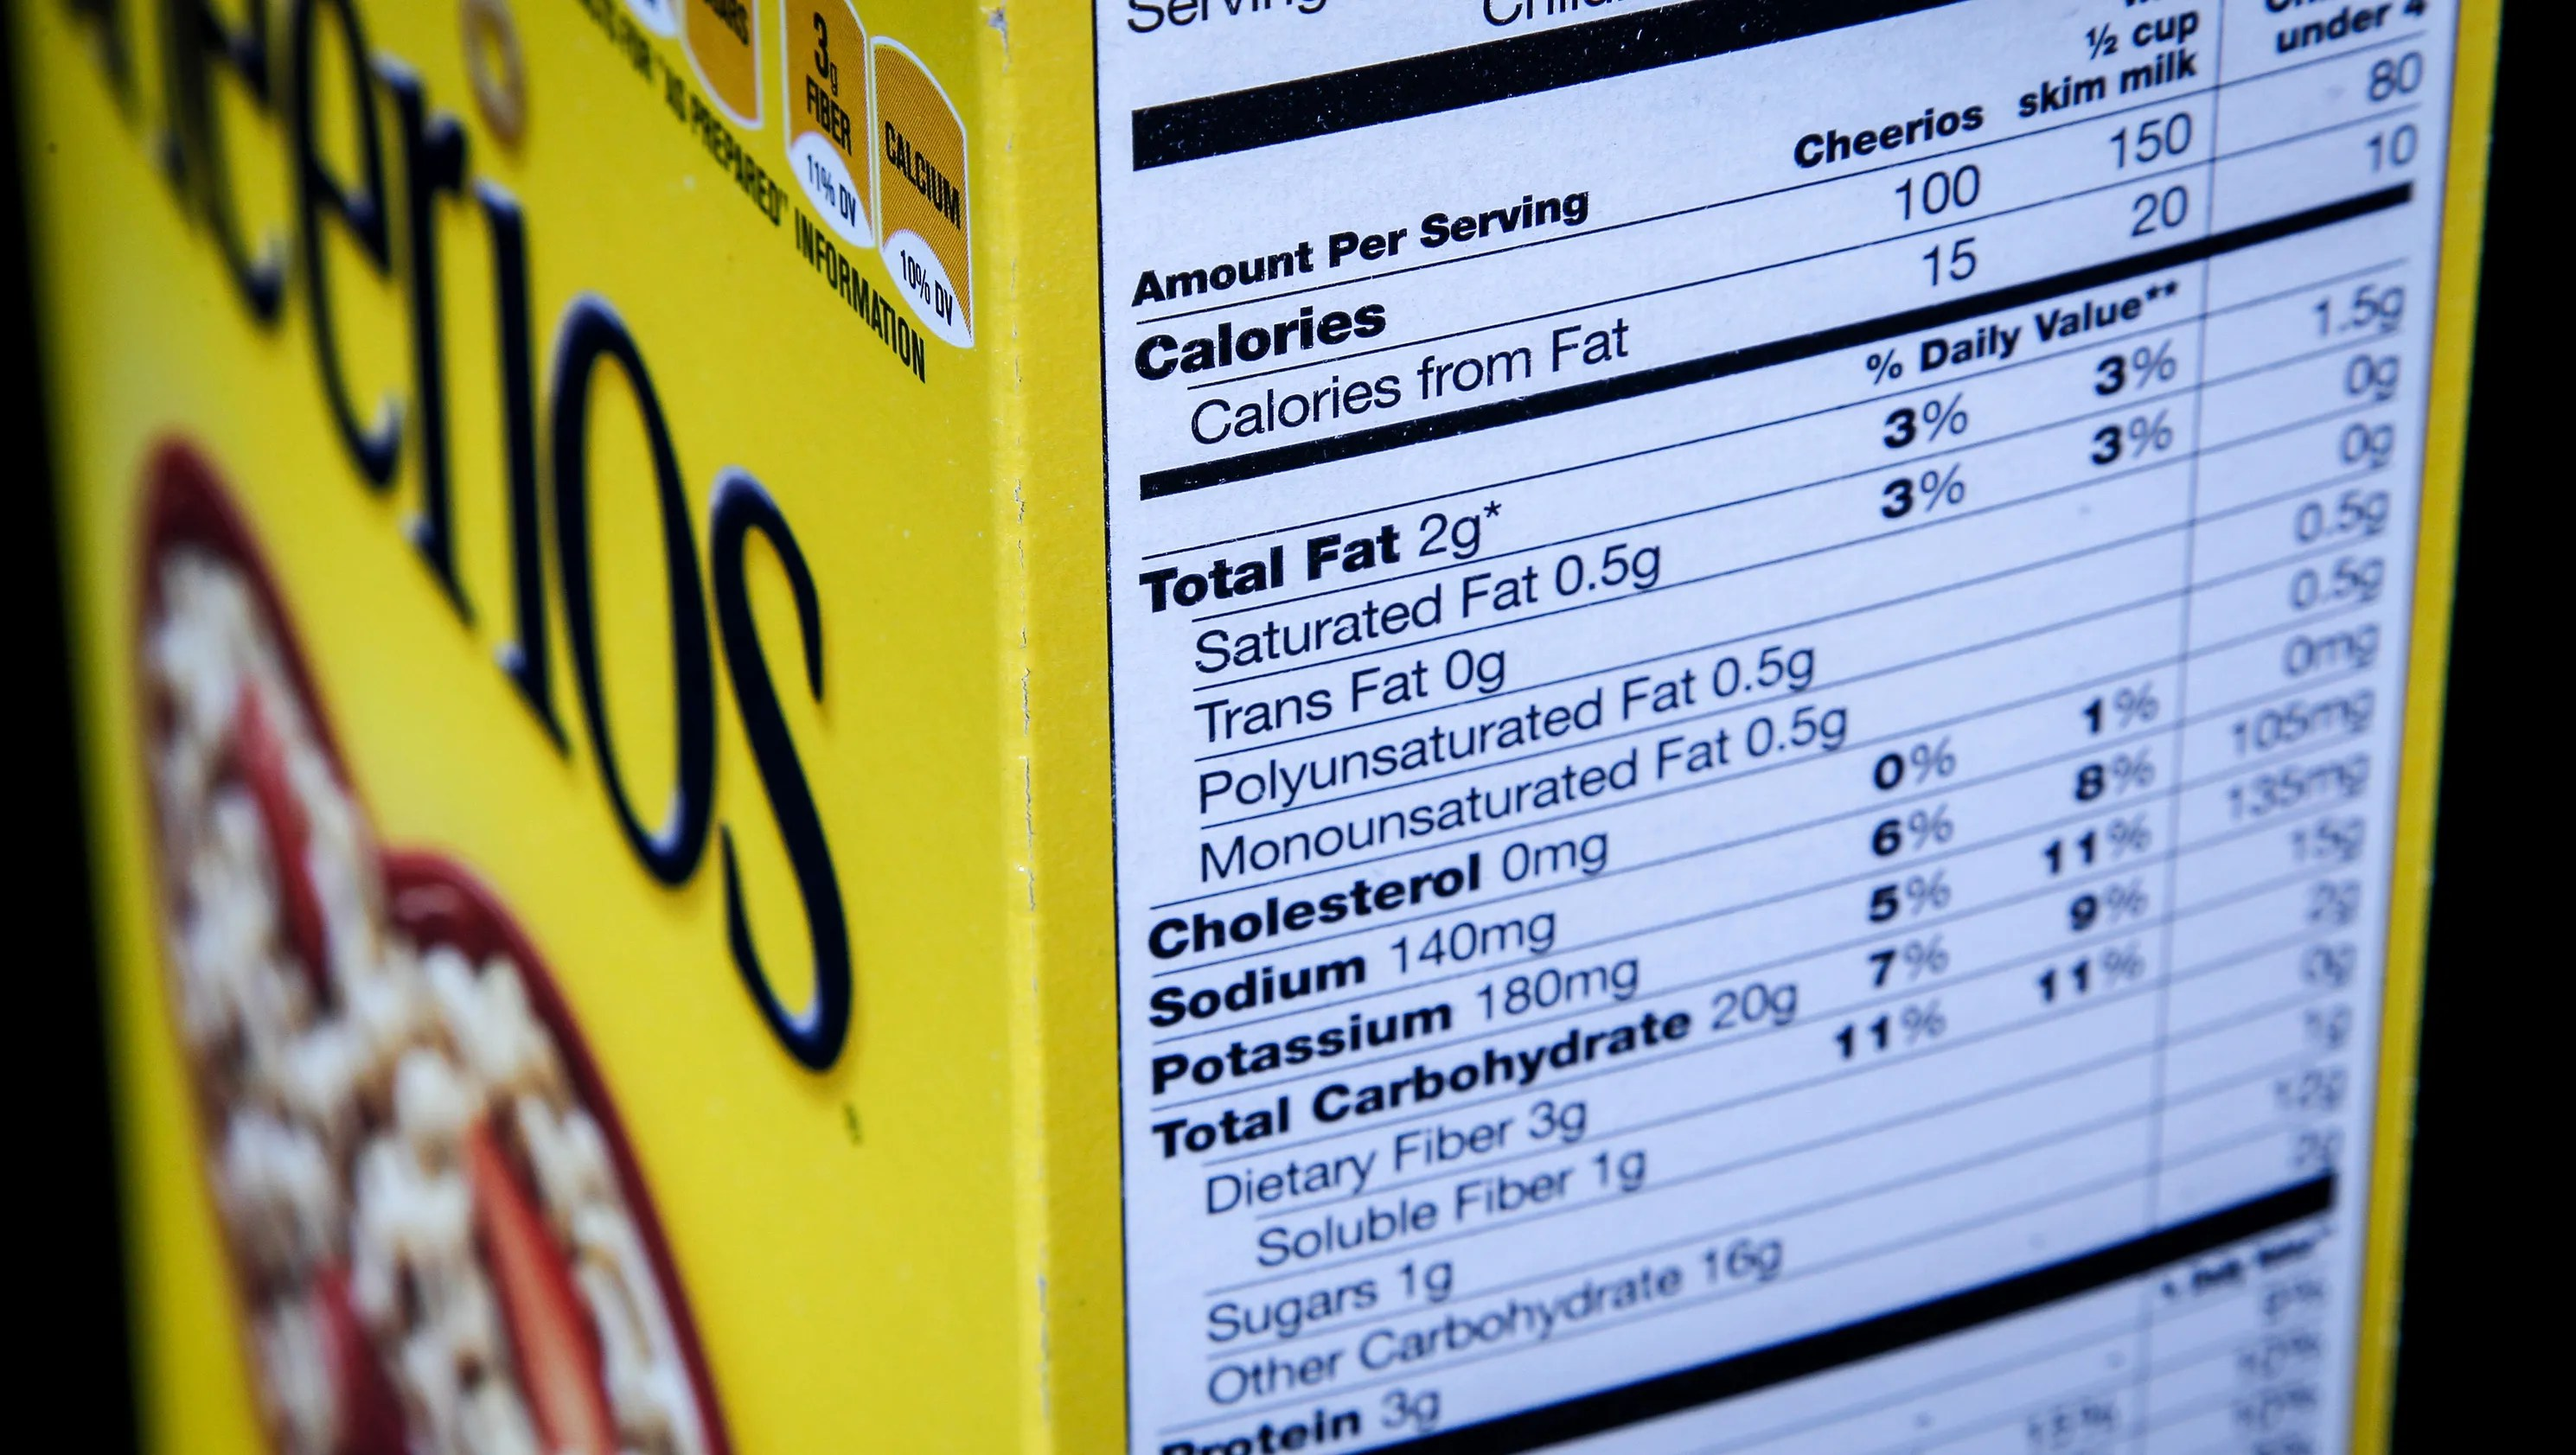 New Nutrition Facts Panel Has Line For Added Sugar